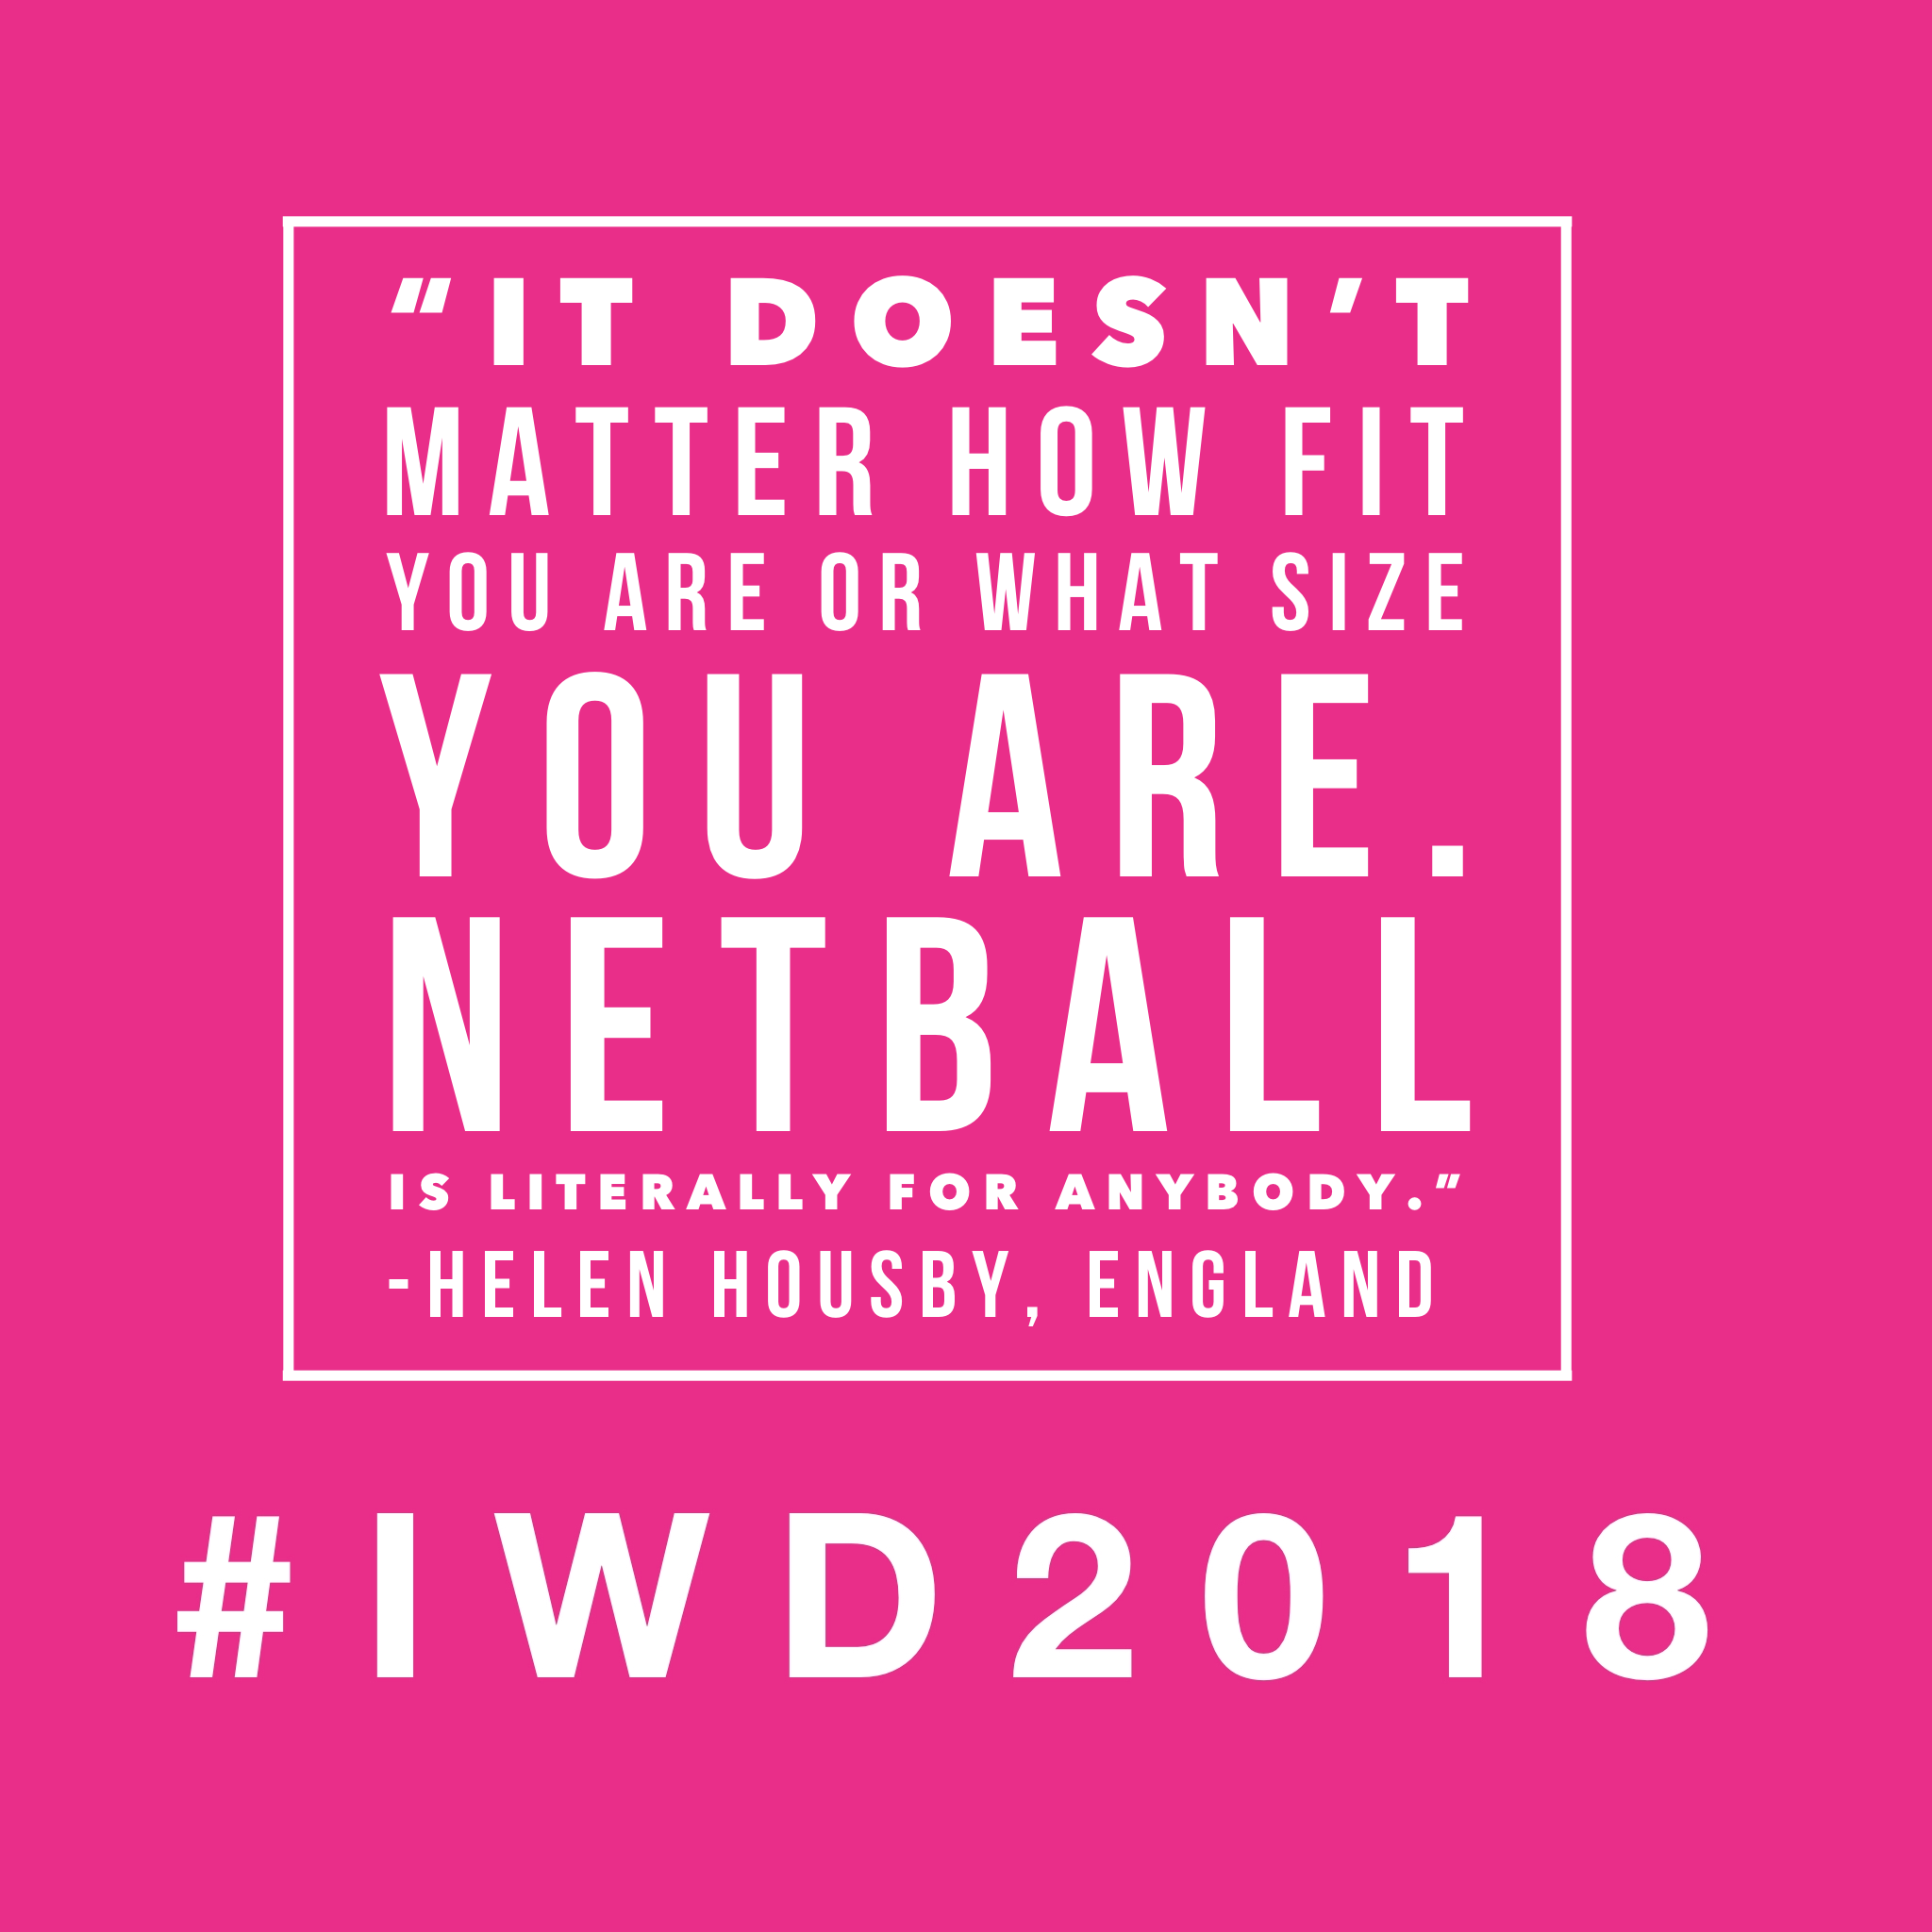 Top Netball Quotes for #IWD2018 - Sarah Bennett - Medium